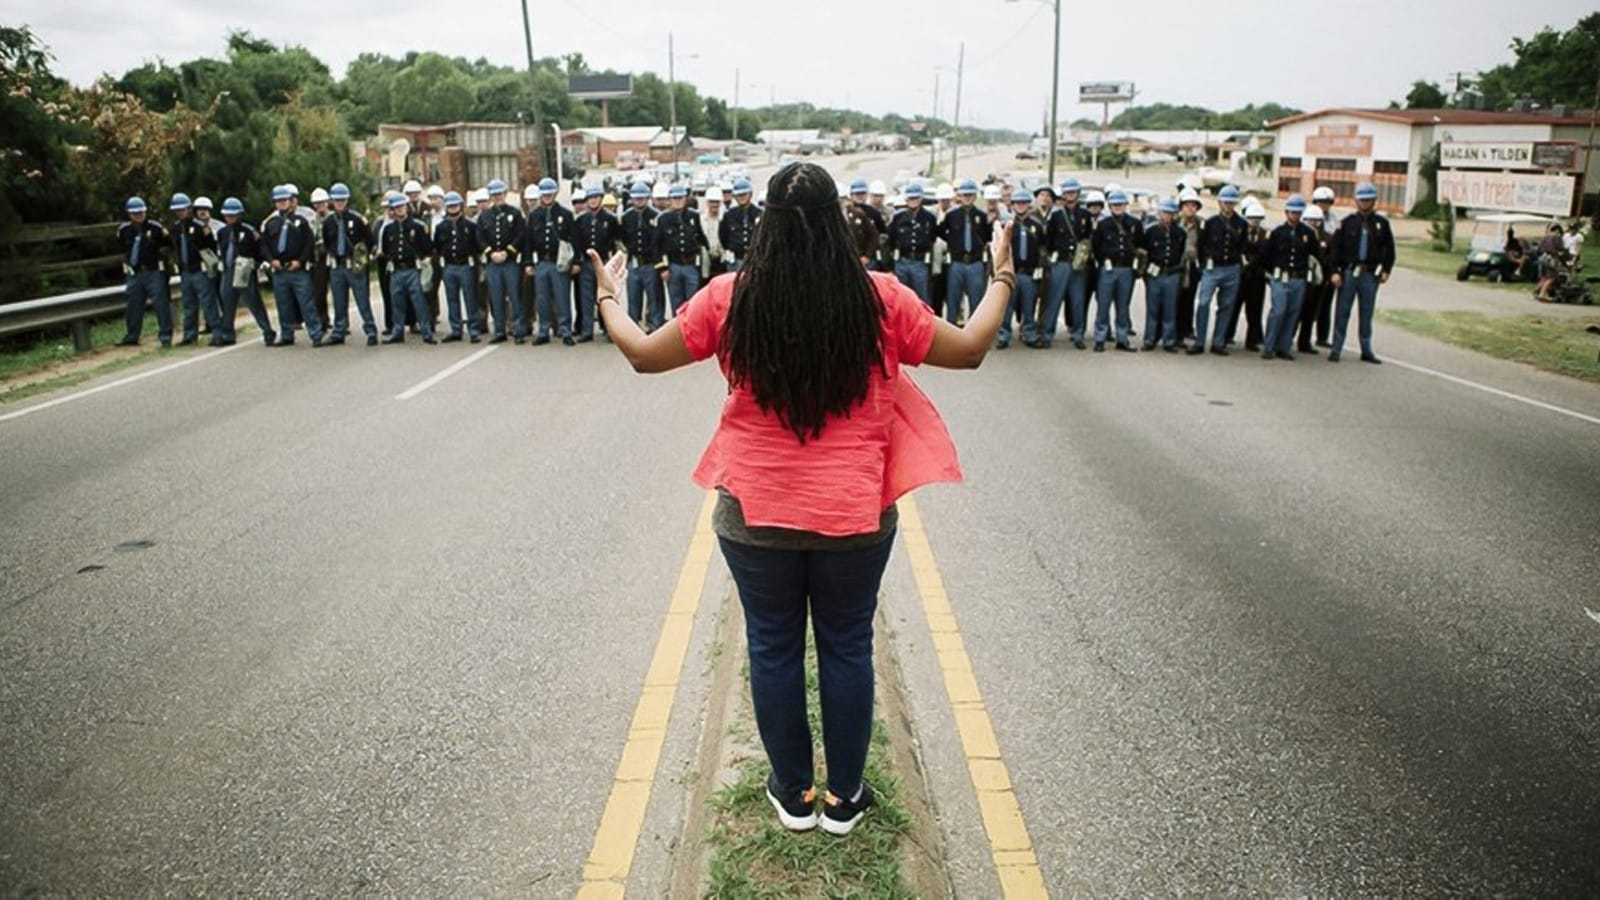 Ava DuVernay directs a scene from the film Selma